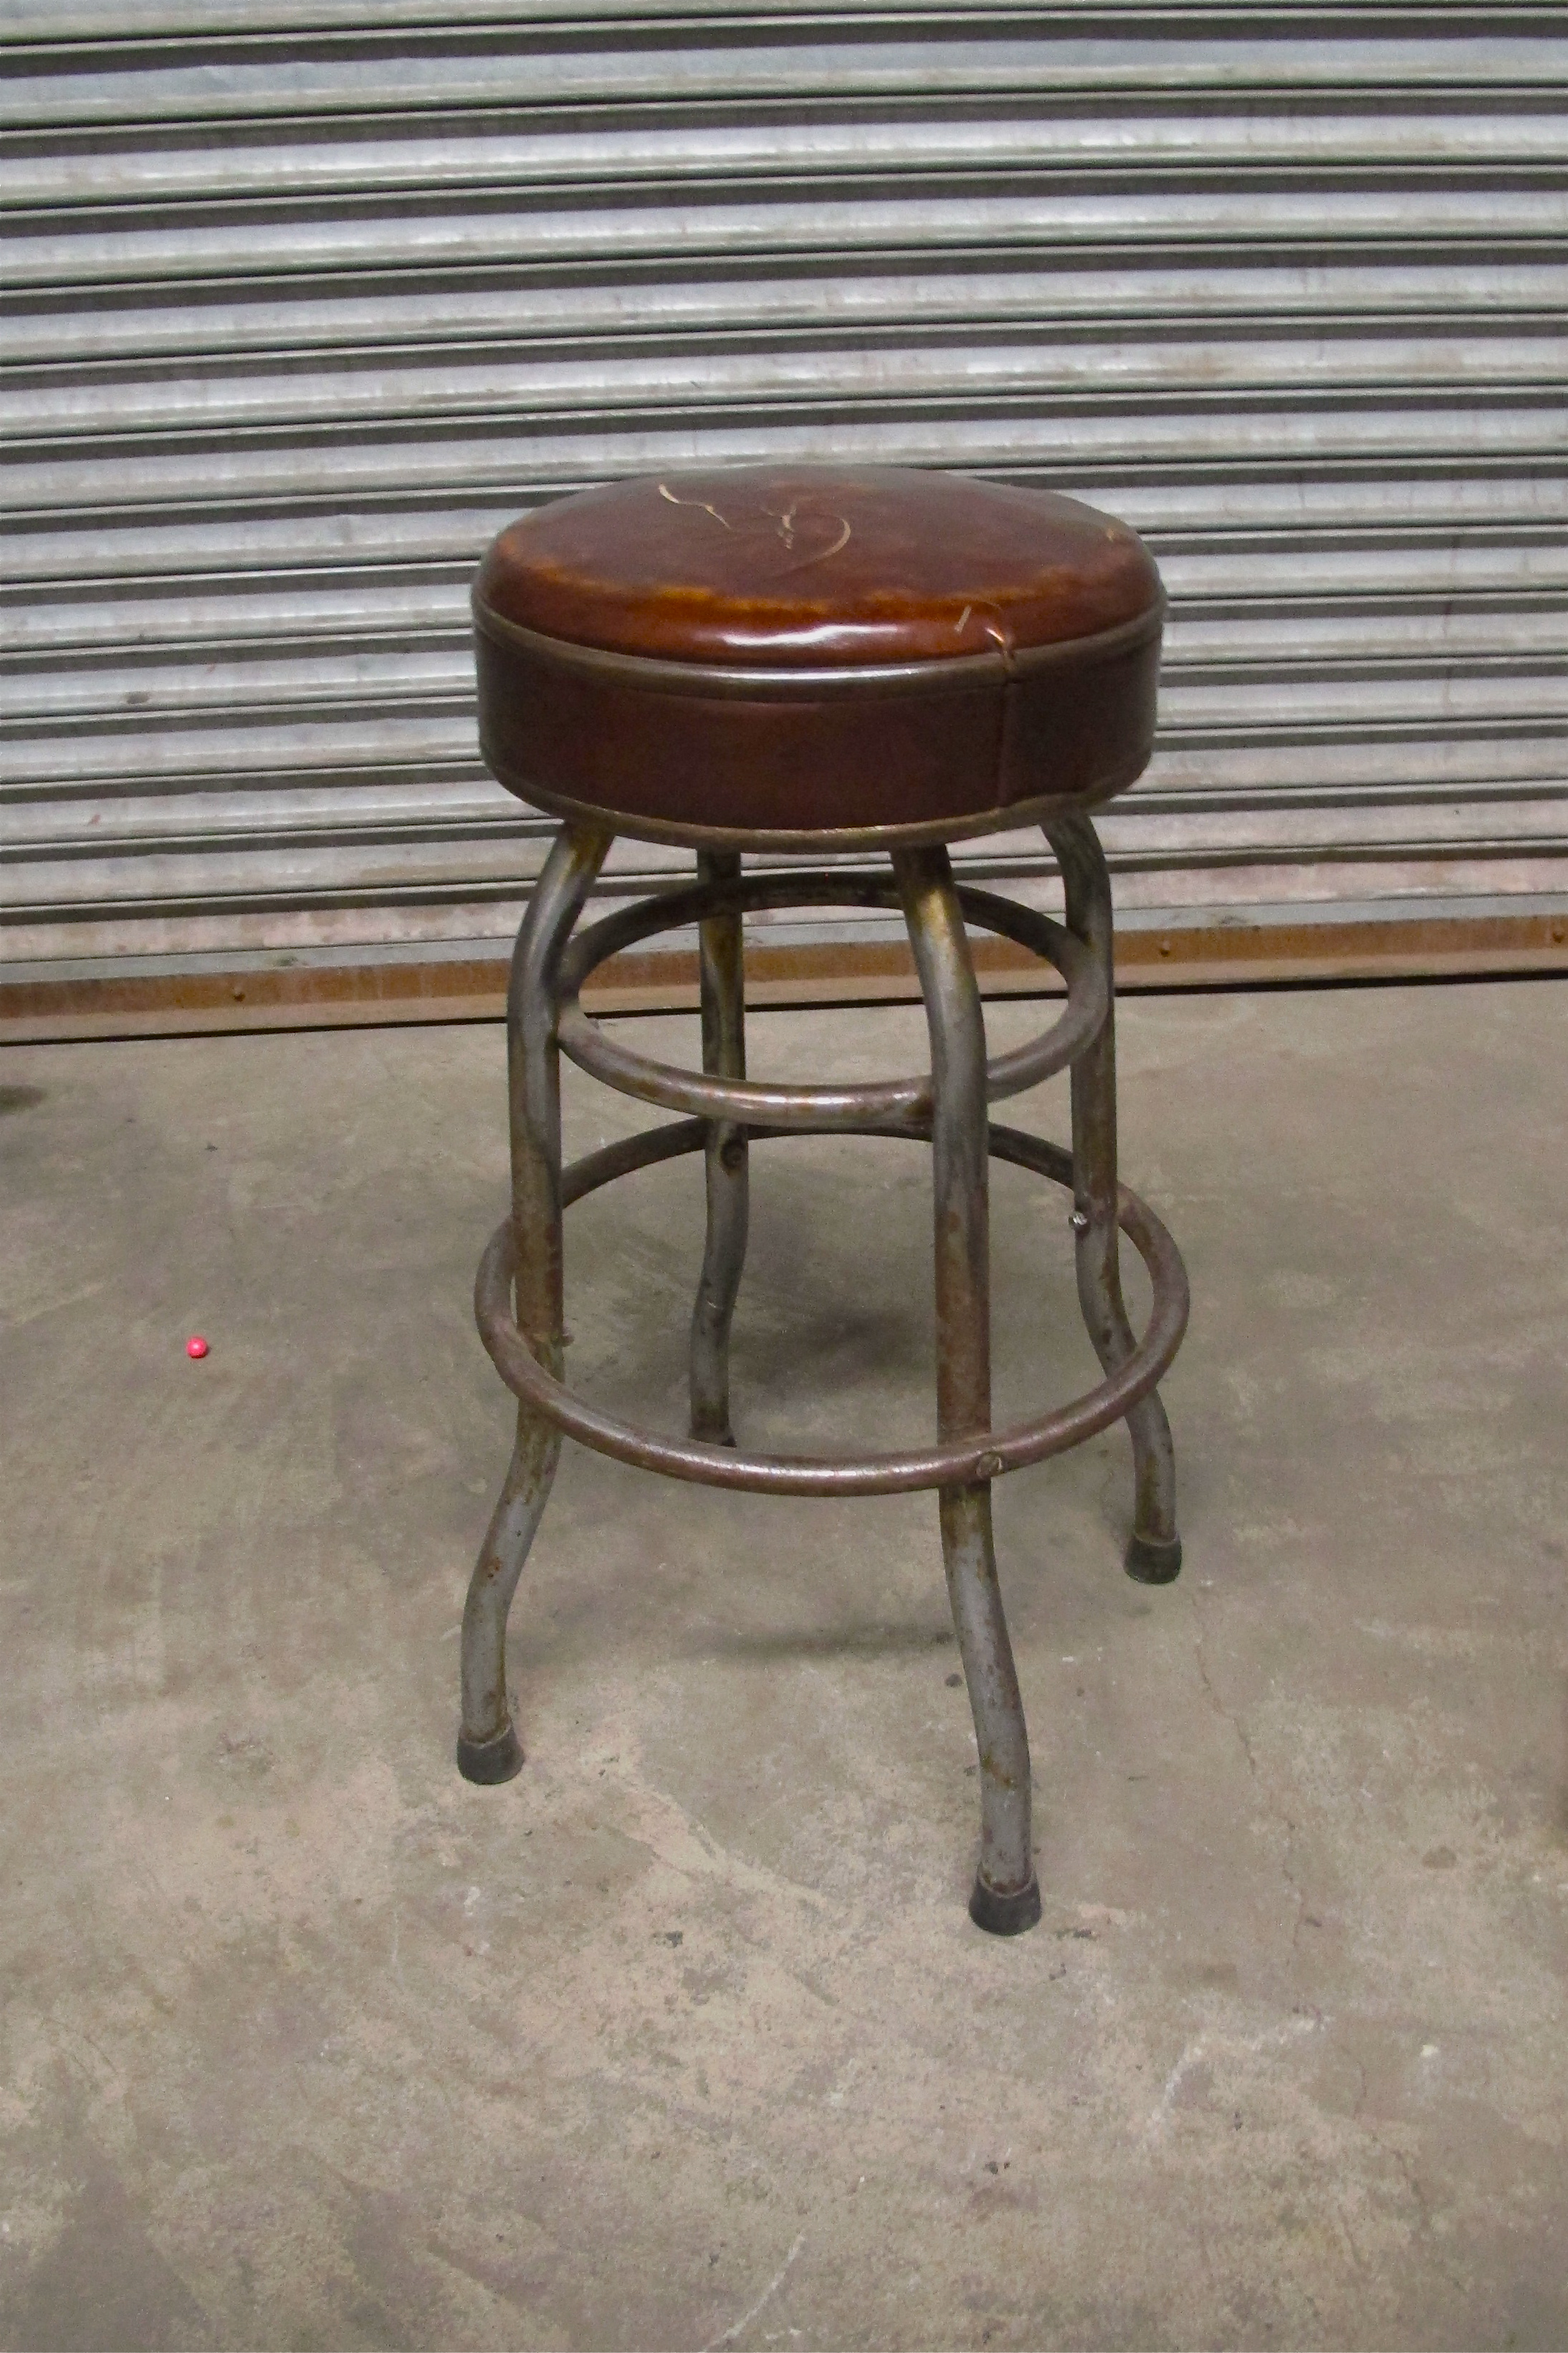 Metal Stool with Brown Leather Upholstered Seat $25